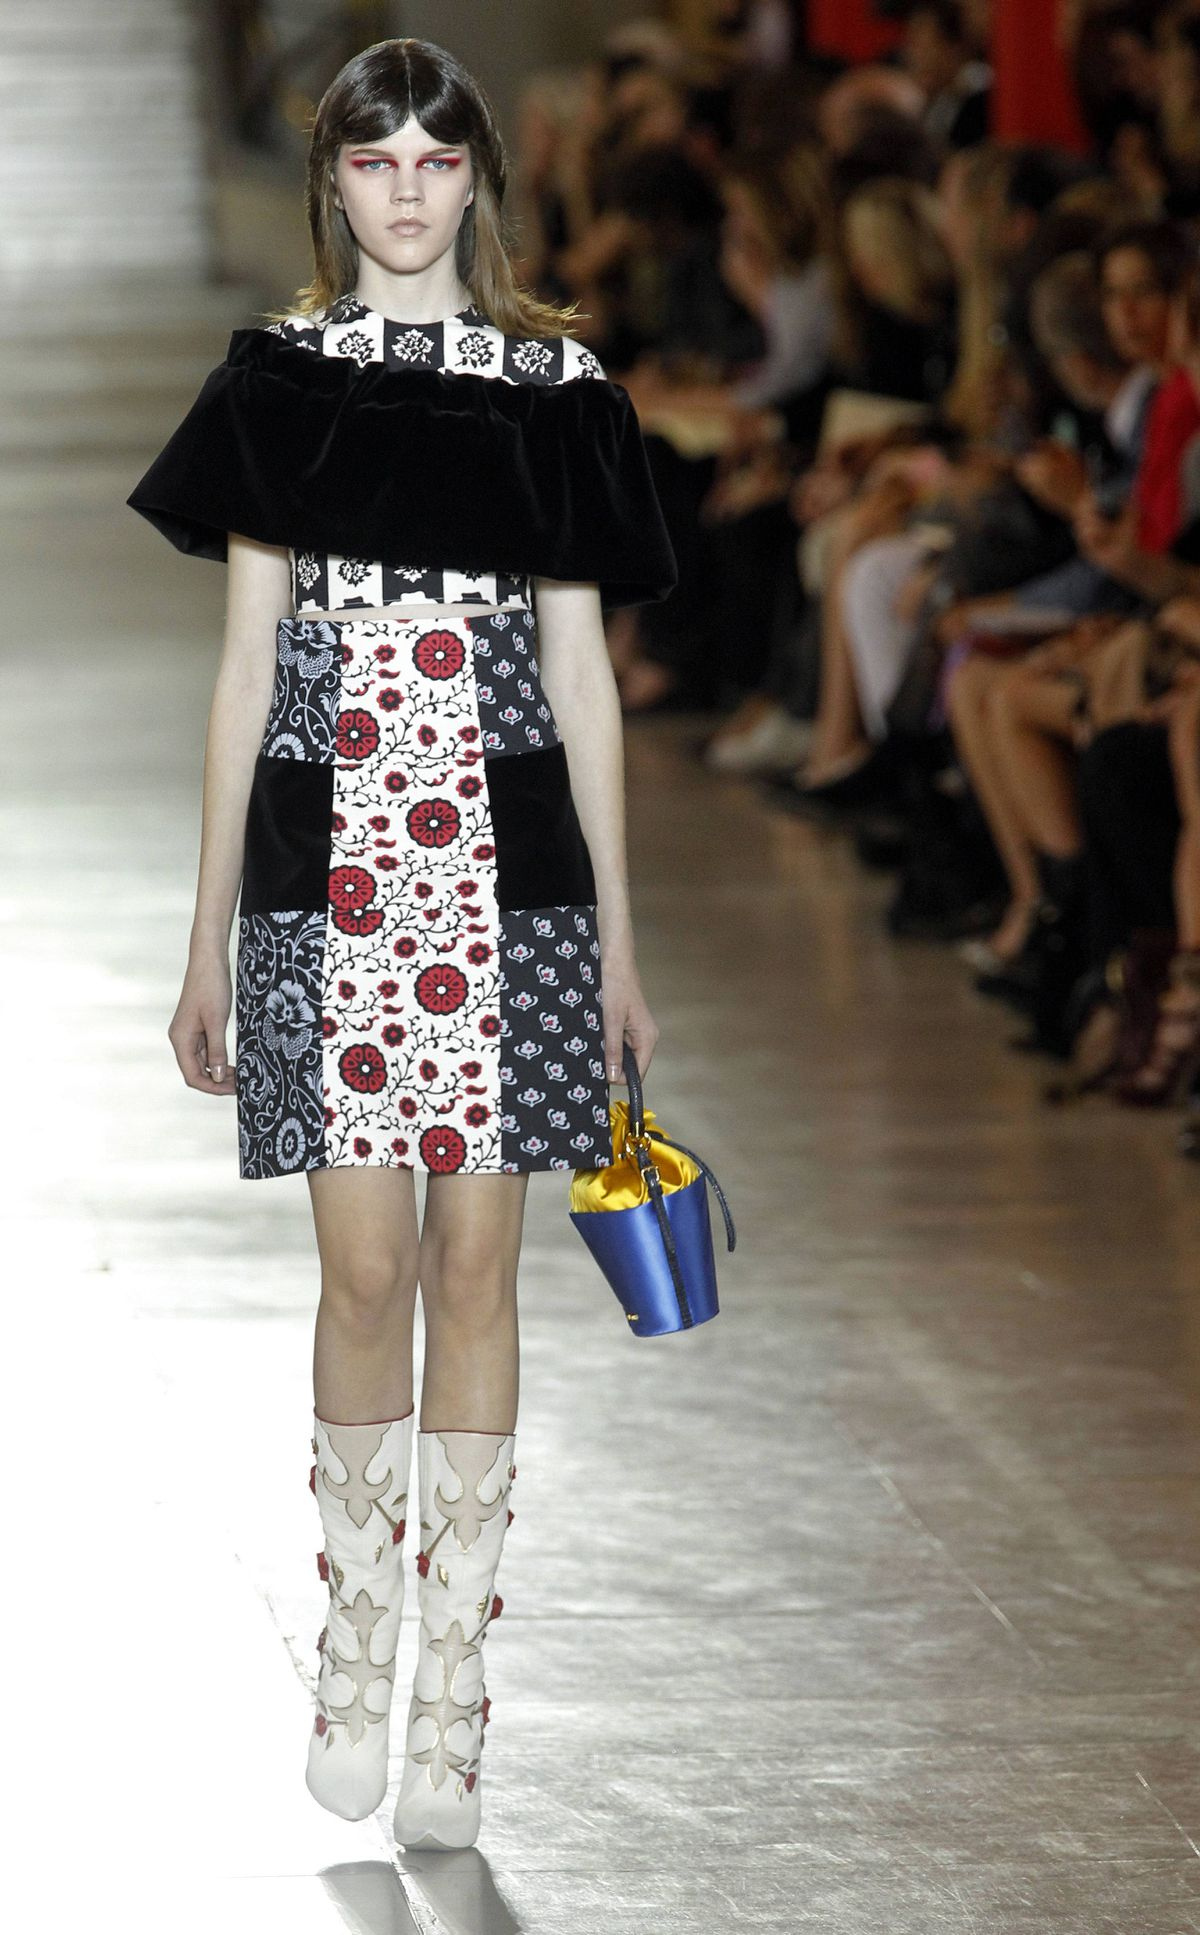 But following a grouping of lace shift dresses (can spring possibly be any lacier?), came the Miu Miu gal as we know and love her: a patchwork of eccentric upholstery prints. Somewhere, a castoff family of sofas and drapes is begging for credit.